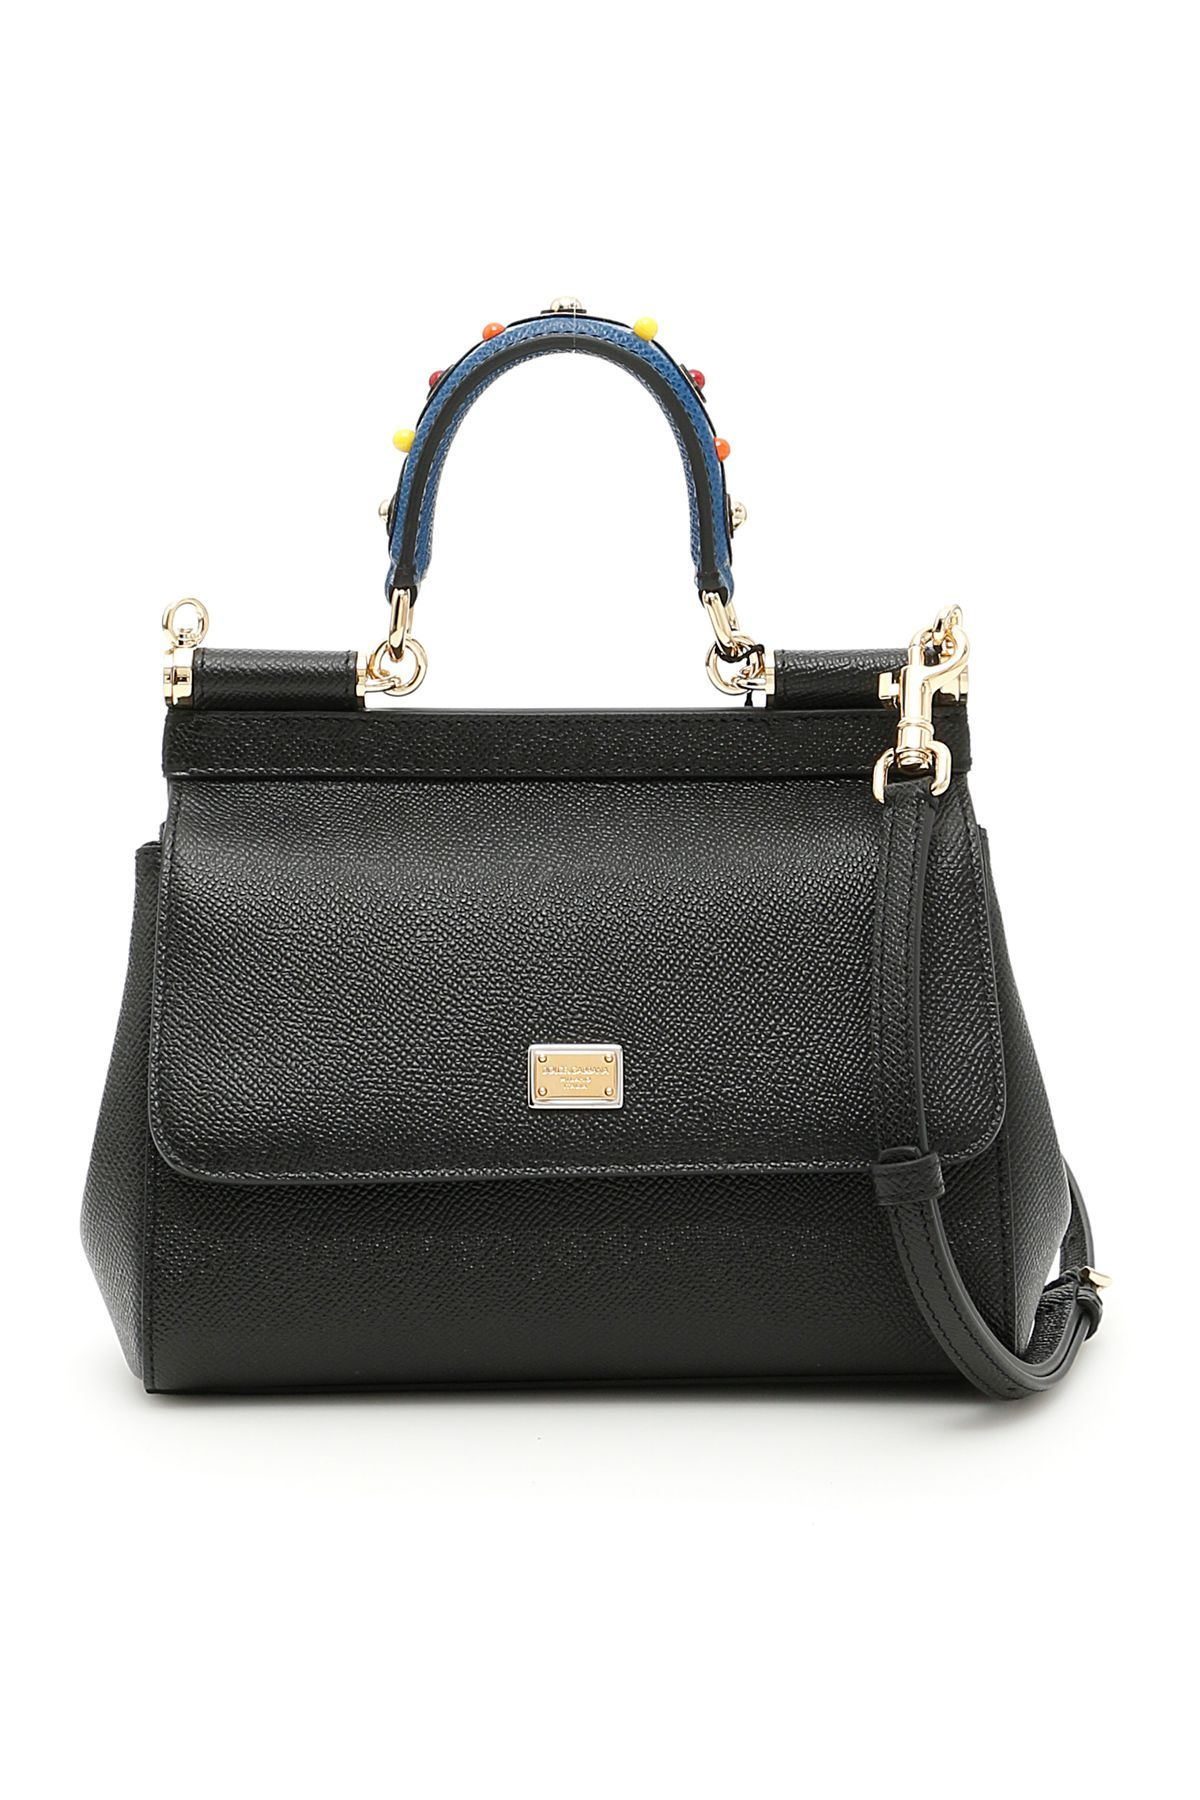 7d0ab52c45 DOLCE   GABBANA SMALL SICILY BAG.  dolcegabbana  bags  shoulder bags  hand  bags  leather  lining